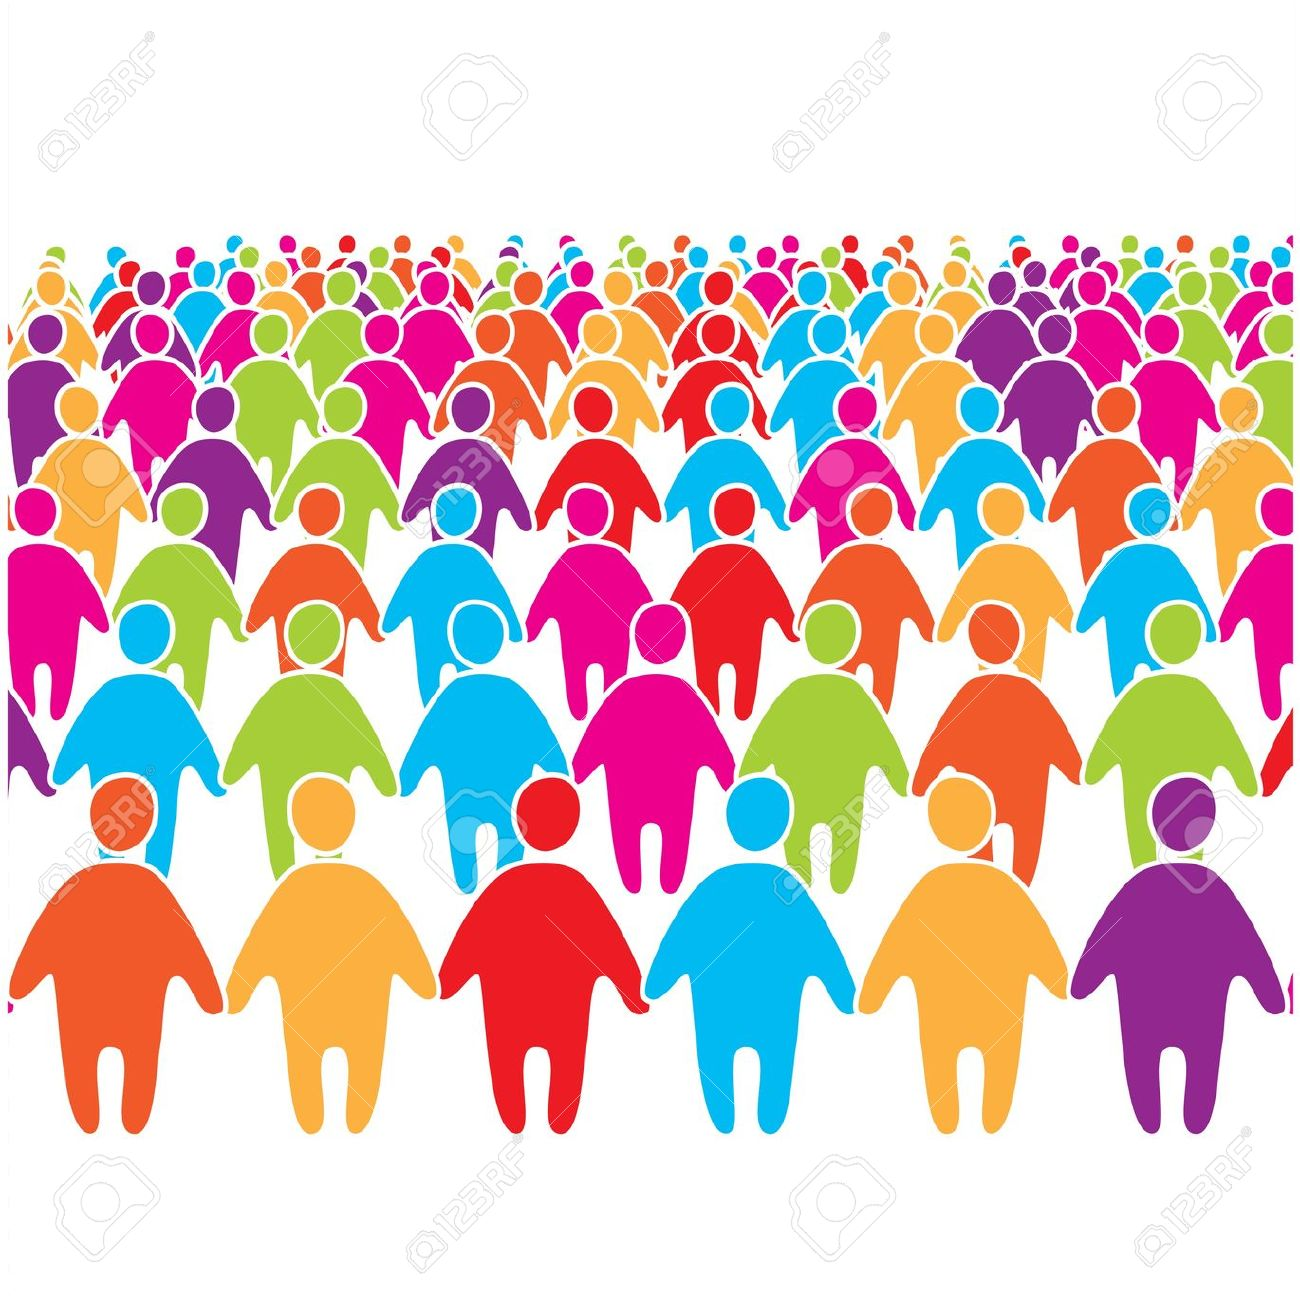 crowd clip art free images clipart panda free clipart Clip Art Cartoon Group of People Group of Business People Clip Art